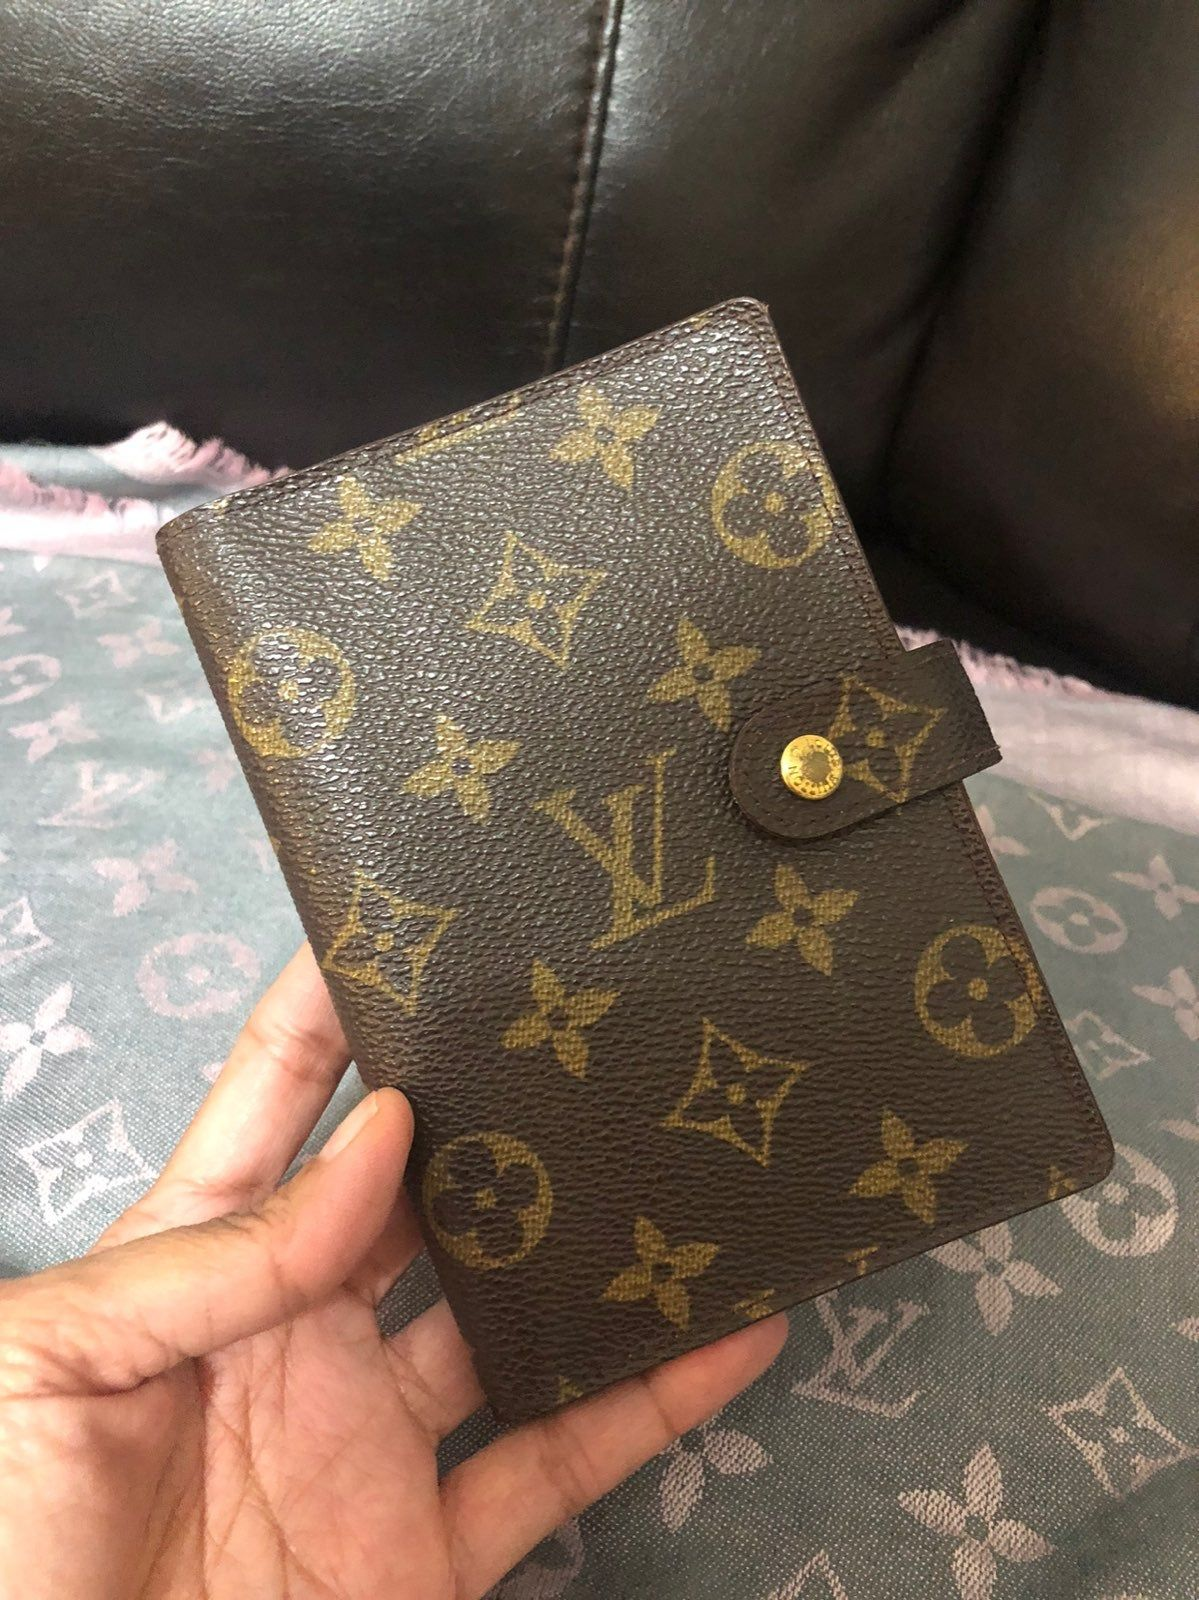 Authentic Preloved Agenda Pm Monogram Can Be Used As A Passport Holder With 3 Slots For Cards Louis Vuitton Wallet Monogram Louis Vuitton Monogram